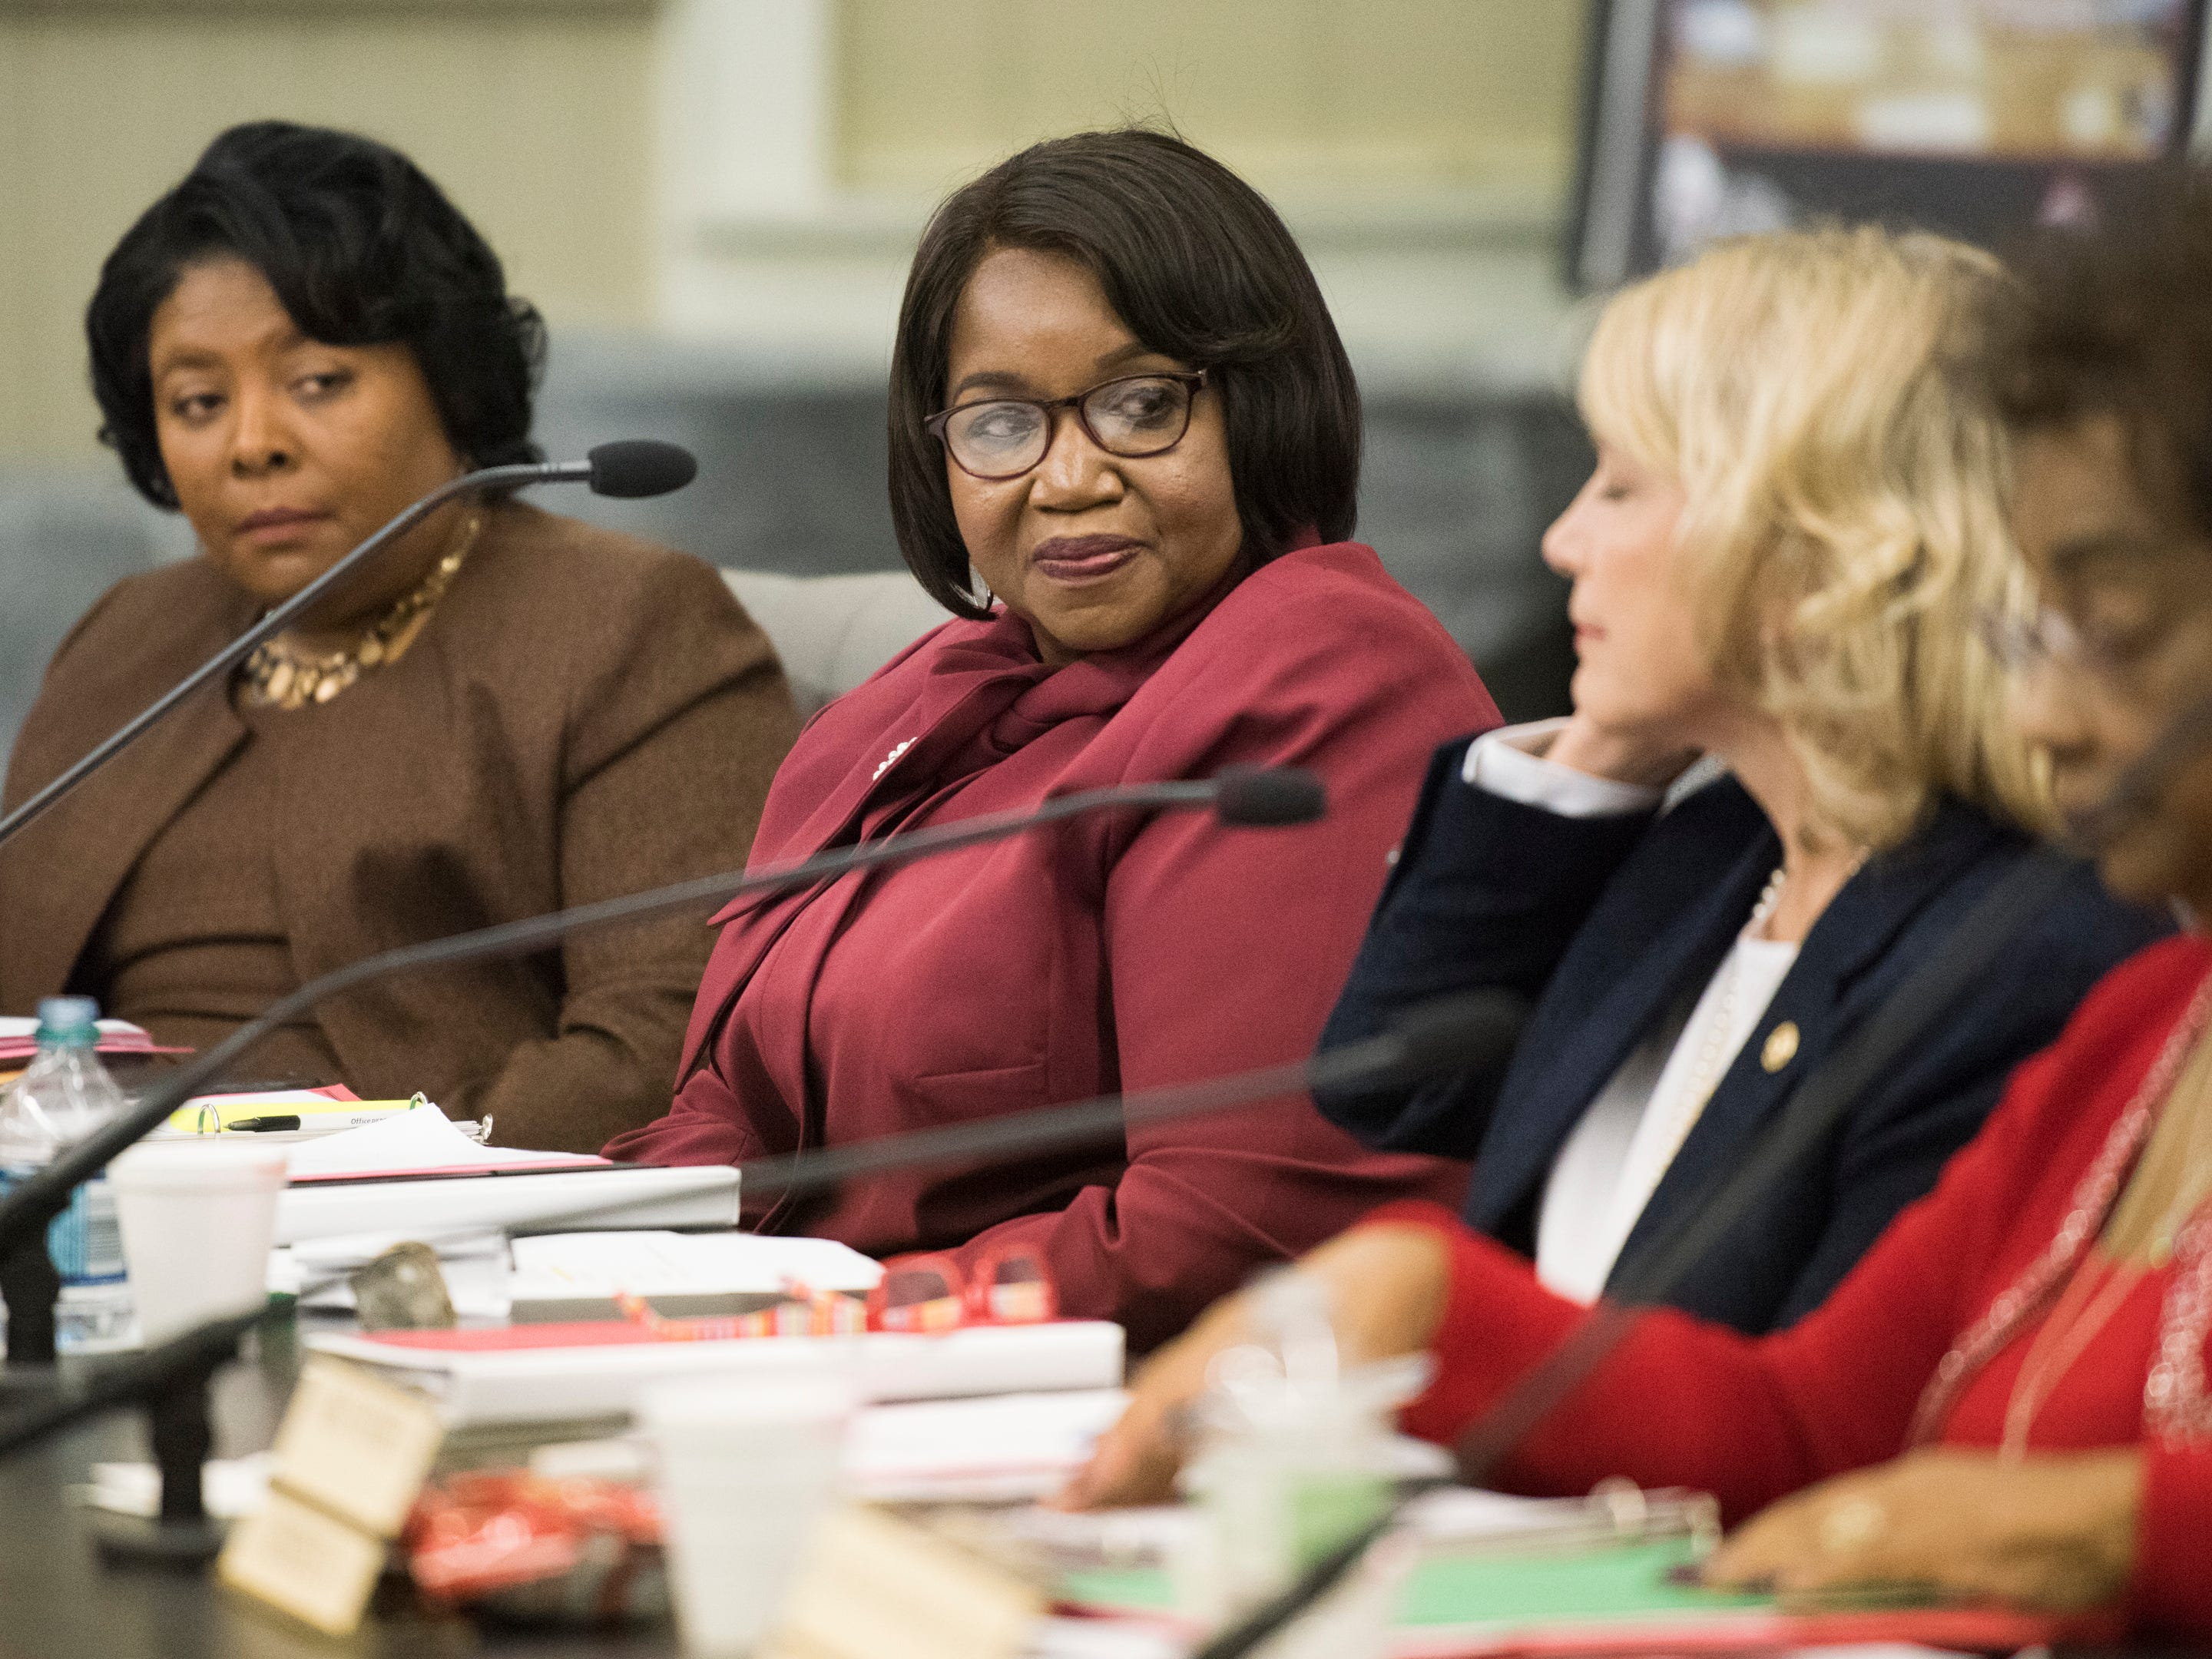 Claudia Mitchell during the MPS school board meeting in Montgomery, Ala., on Tuesday, Dec. 4, 2018.